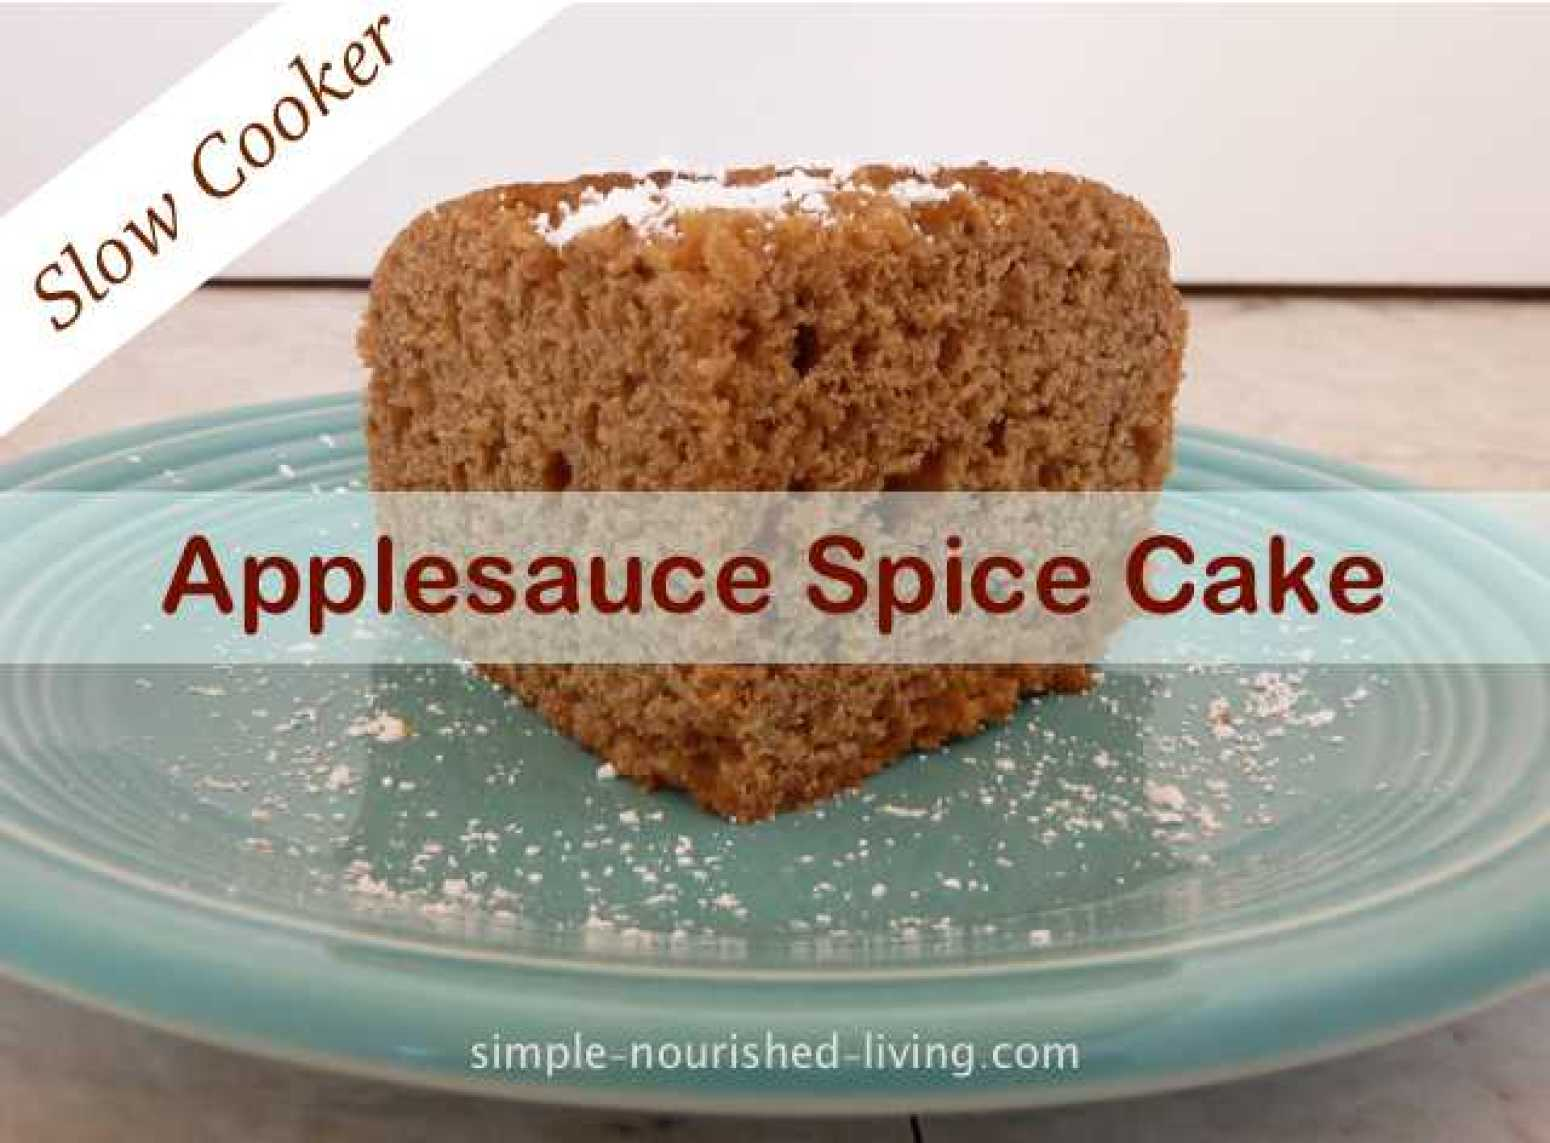 Easy Slow Cooker Applesauce Spice Cake Recipe | Just A Pinch Recipes